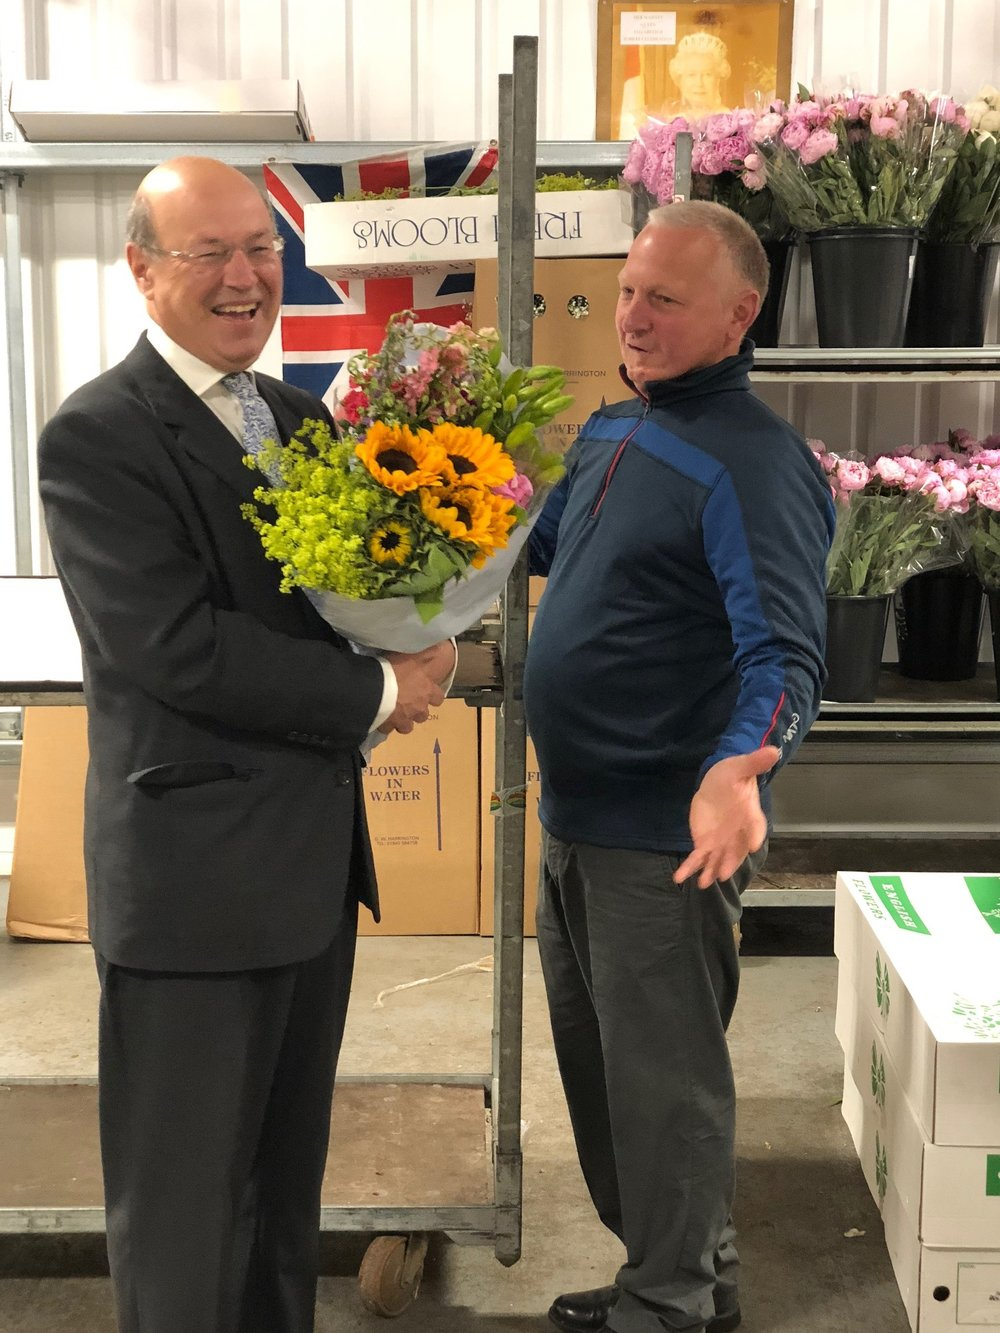 Lord Gardiner with Mick Waite at Pratley Flowers and Plants.